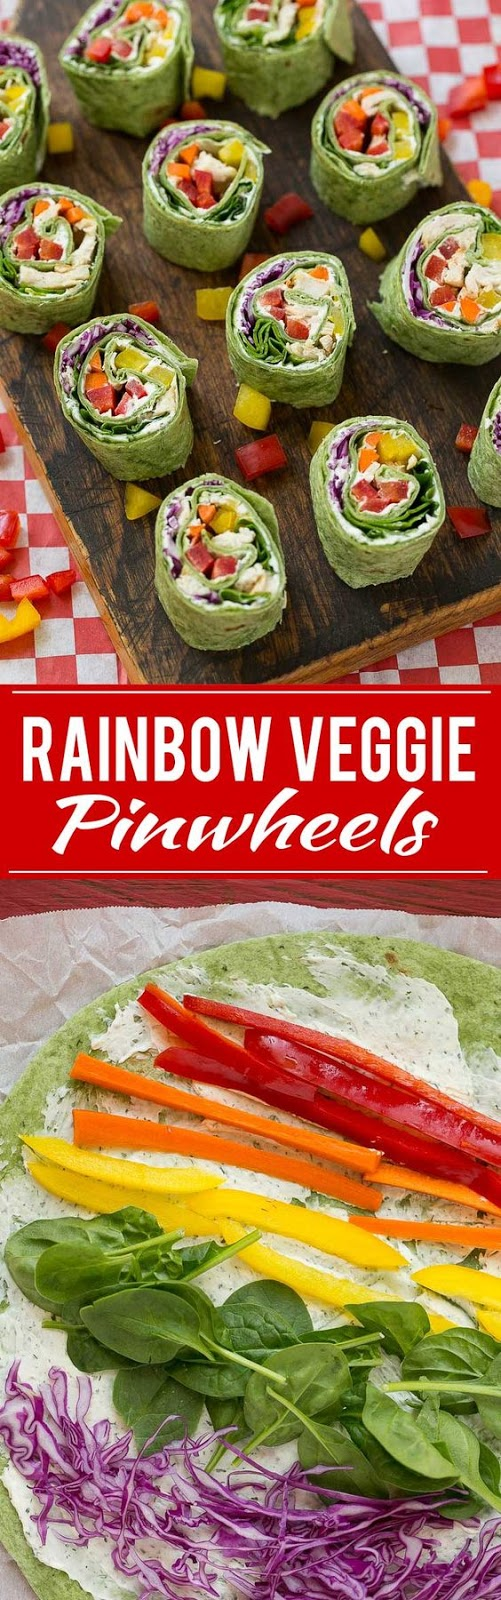 Rainbow veggie pinwheels are made with homemade ranch spread and a variety of fresh veggies for a colorful and healthy lunch, snack or appetizer.